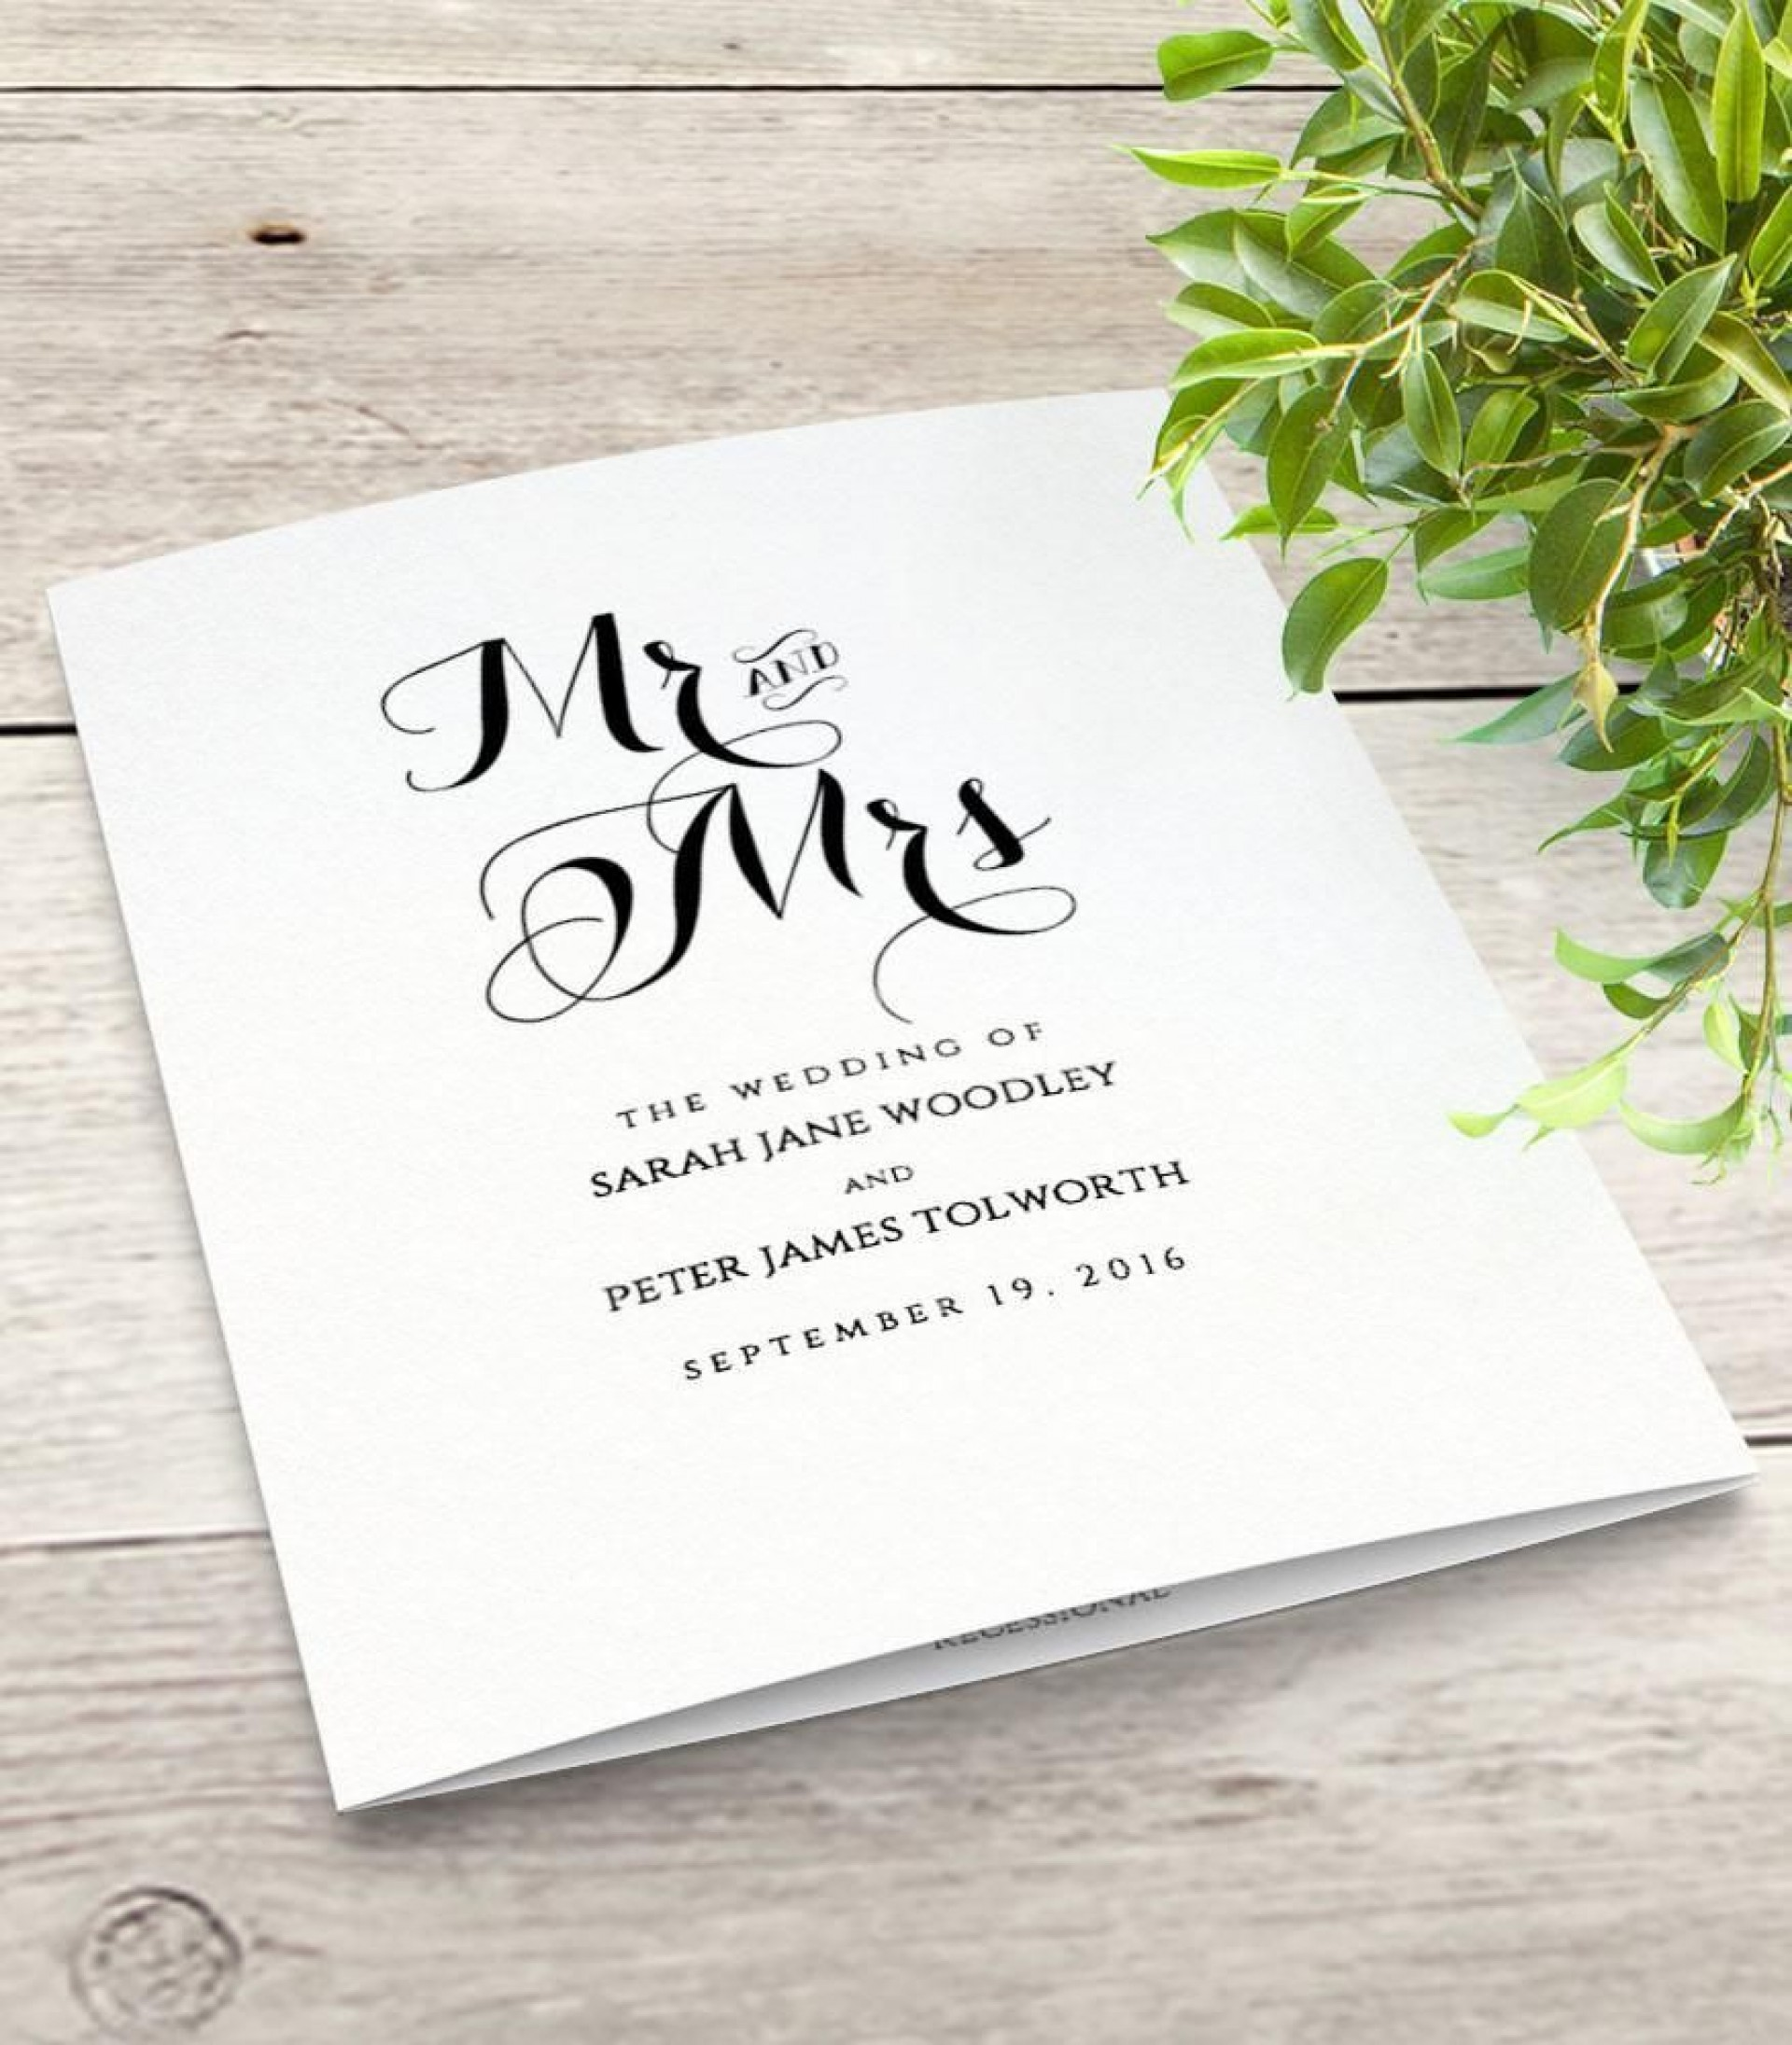 000 Incredible Wedding Order Of Service Template Free High Definition  Front Cover Download Church1920